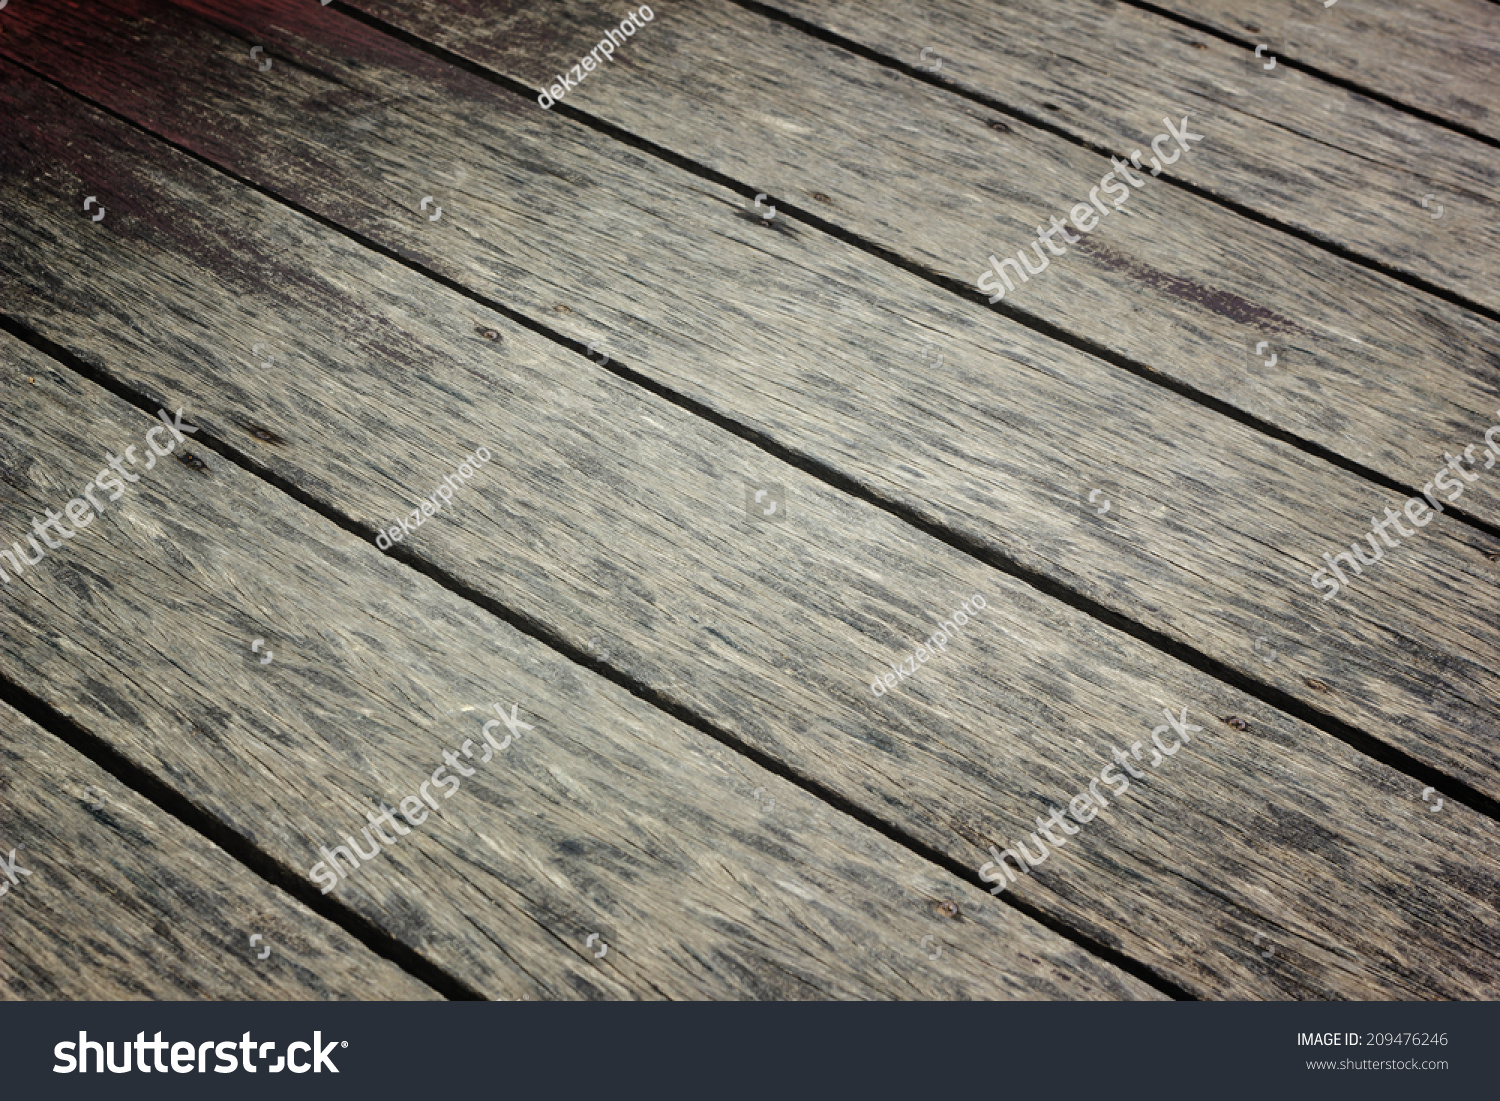 wooden texture background #209476246